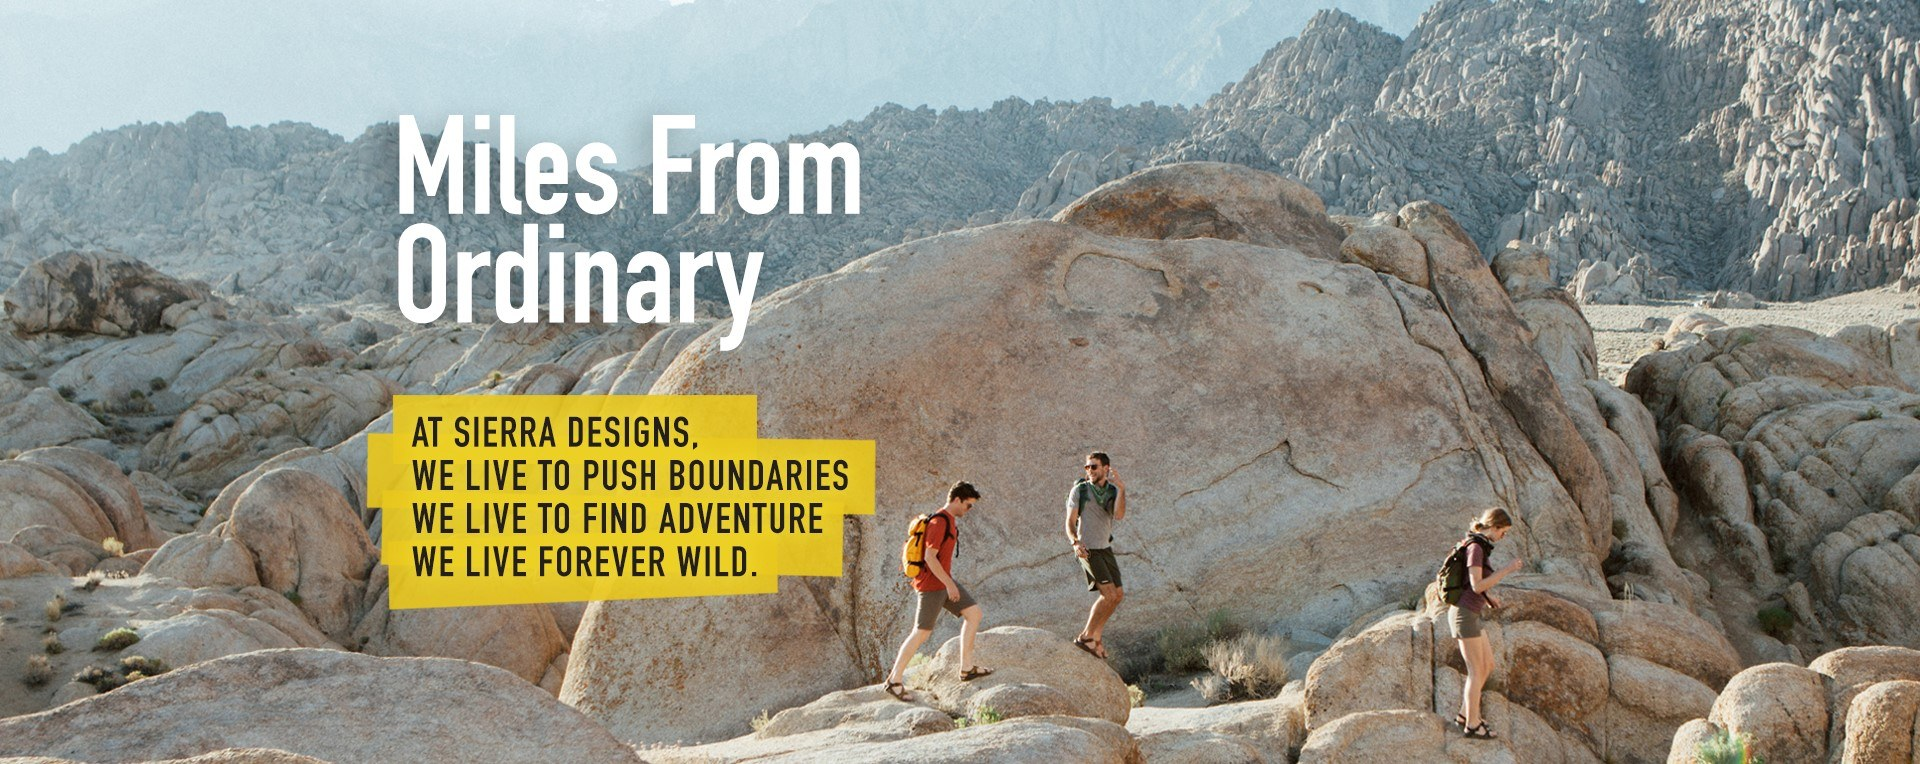 Sierra Designs: Miles From Ordinary